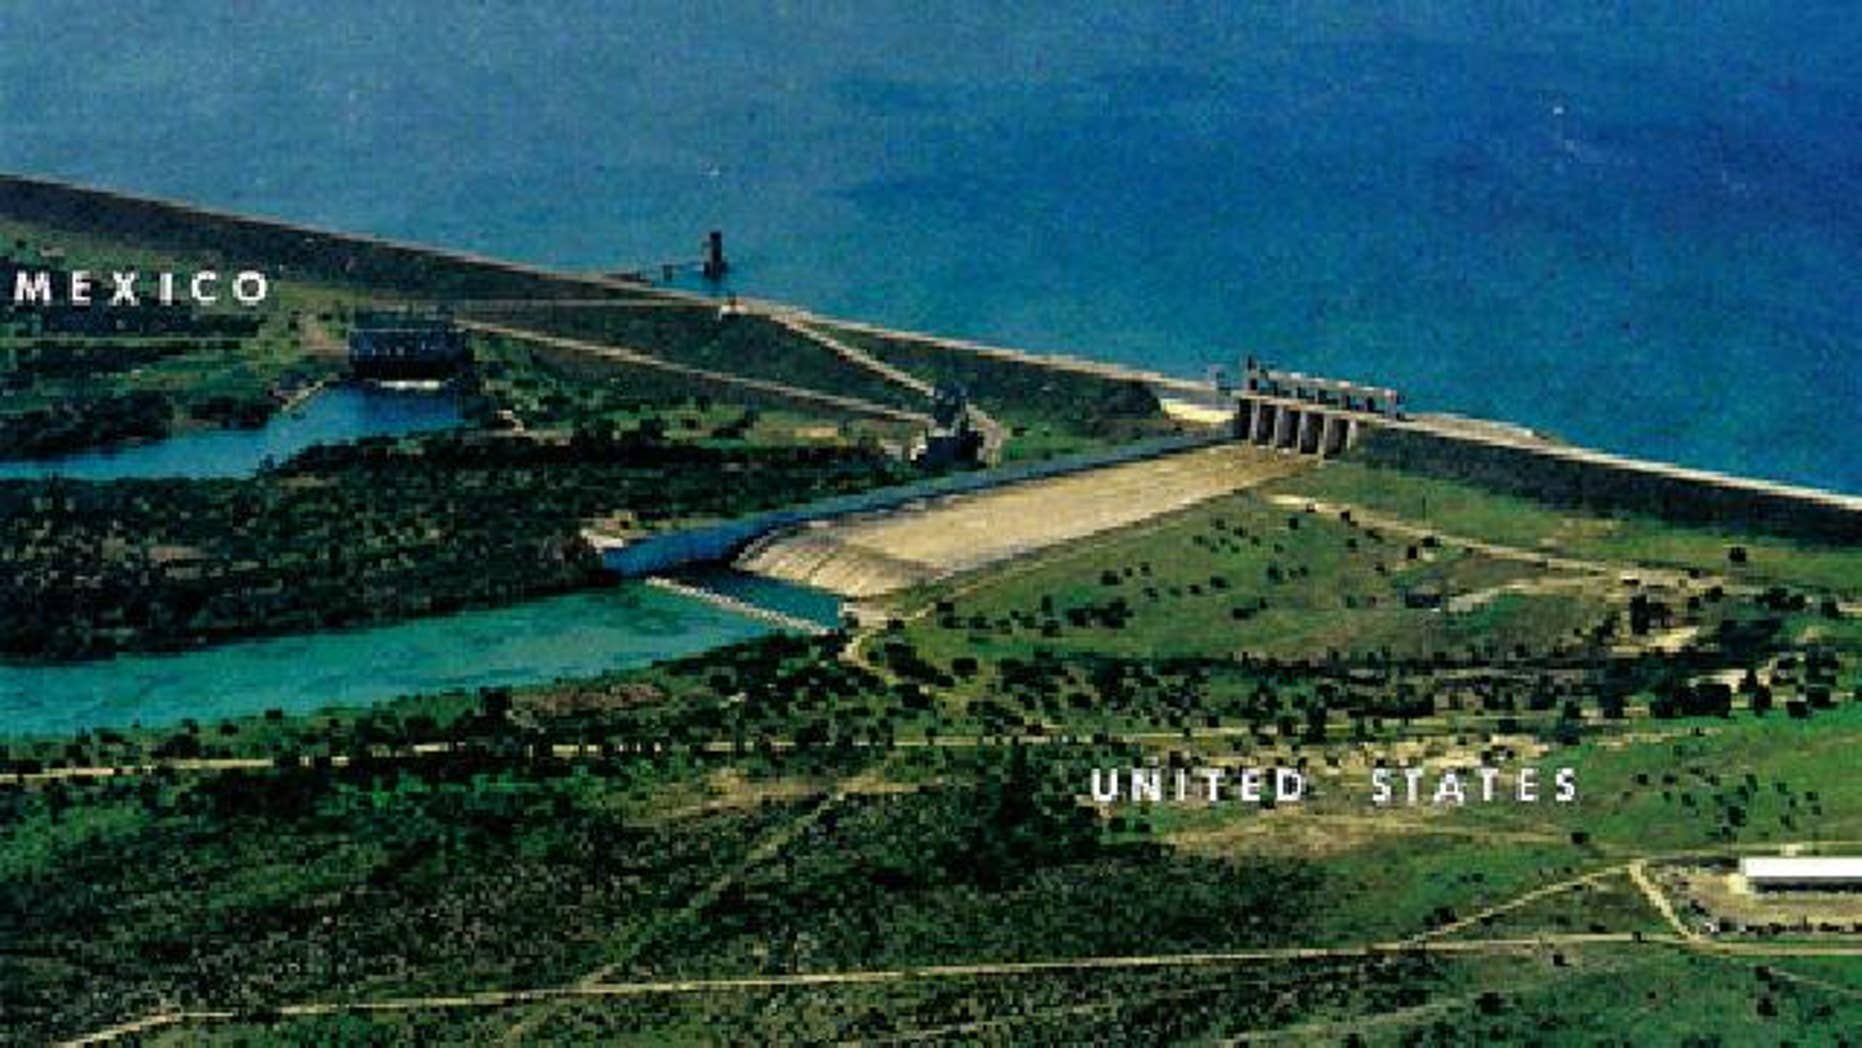 Falcon Dam in south Texas is the lowermost major multipurpose international dam and reservoir on the Rio Grande River.